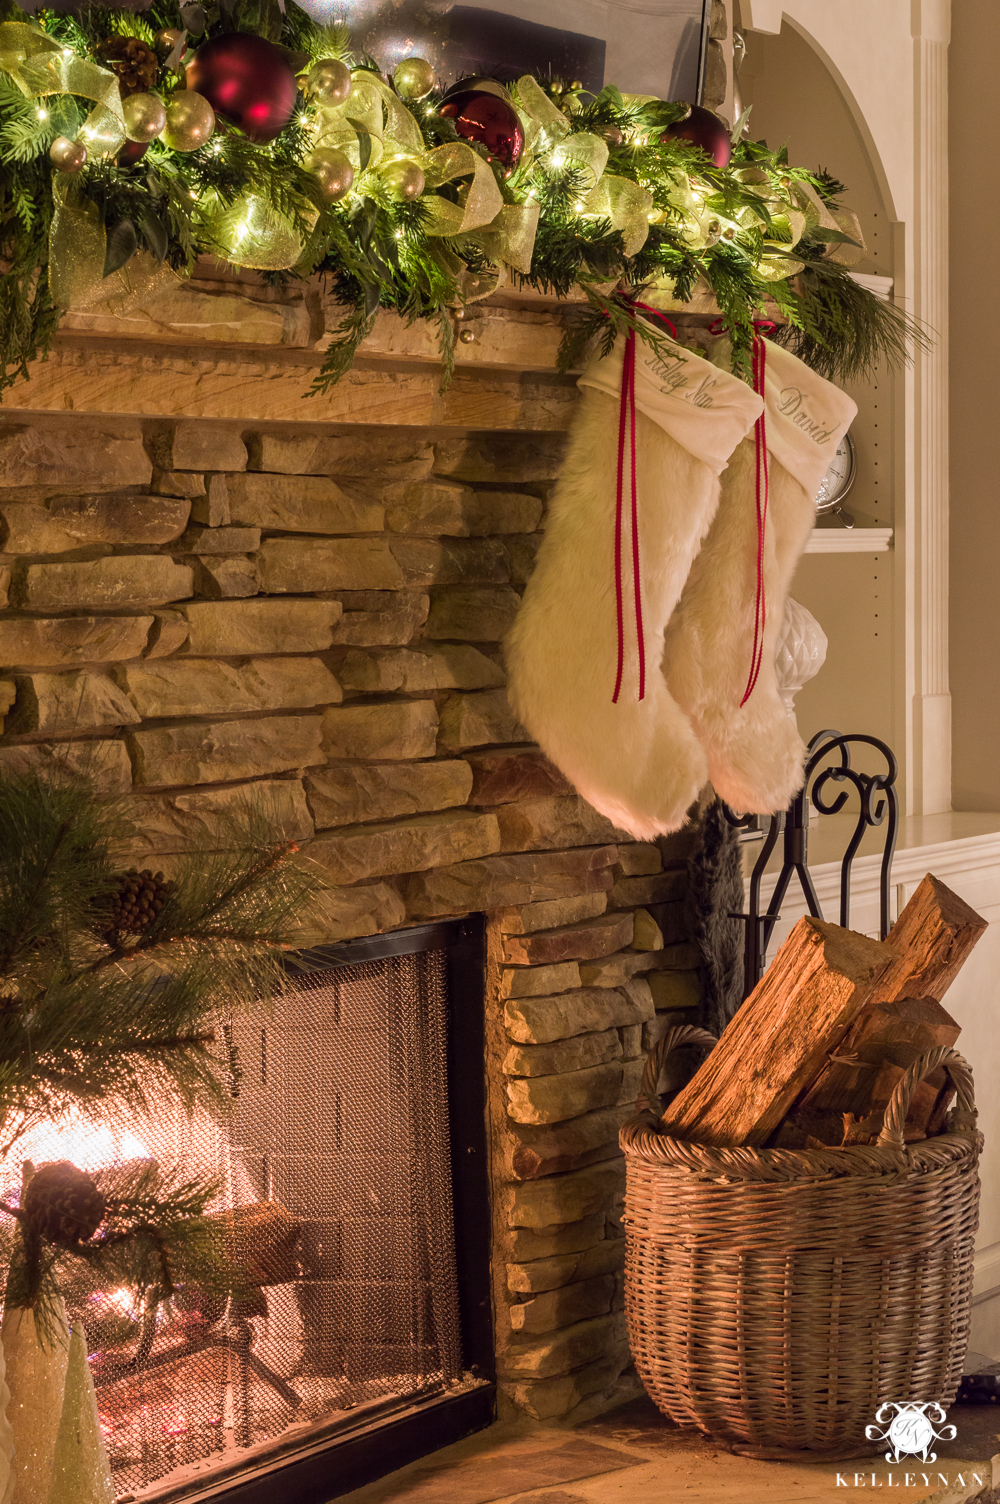 Stockings hung by fireplace with fire at night